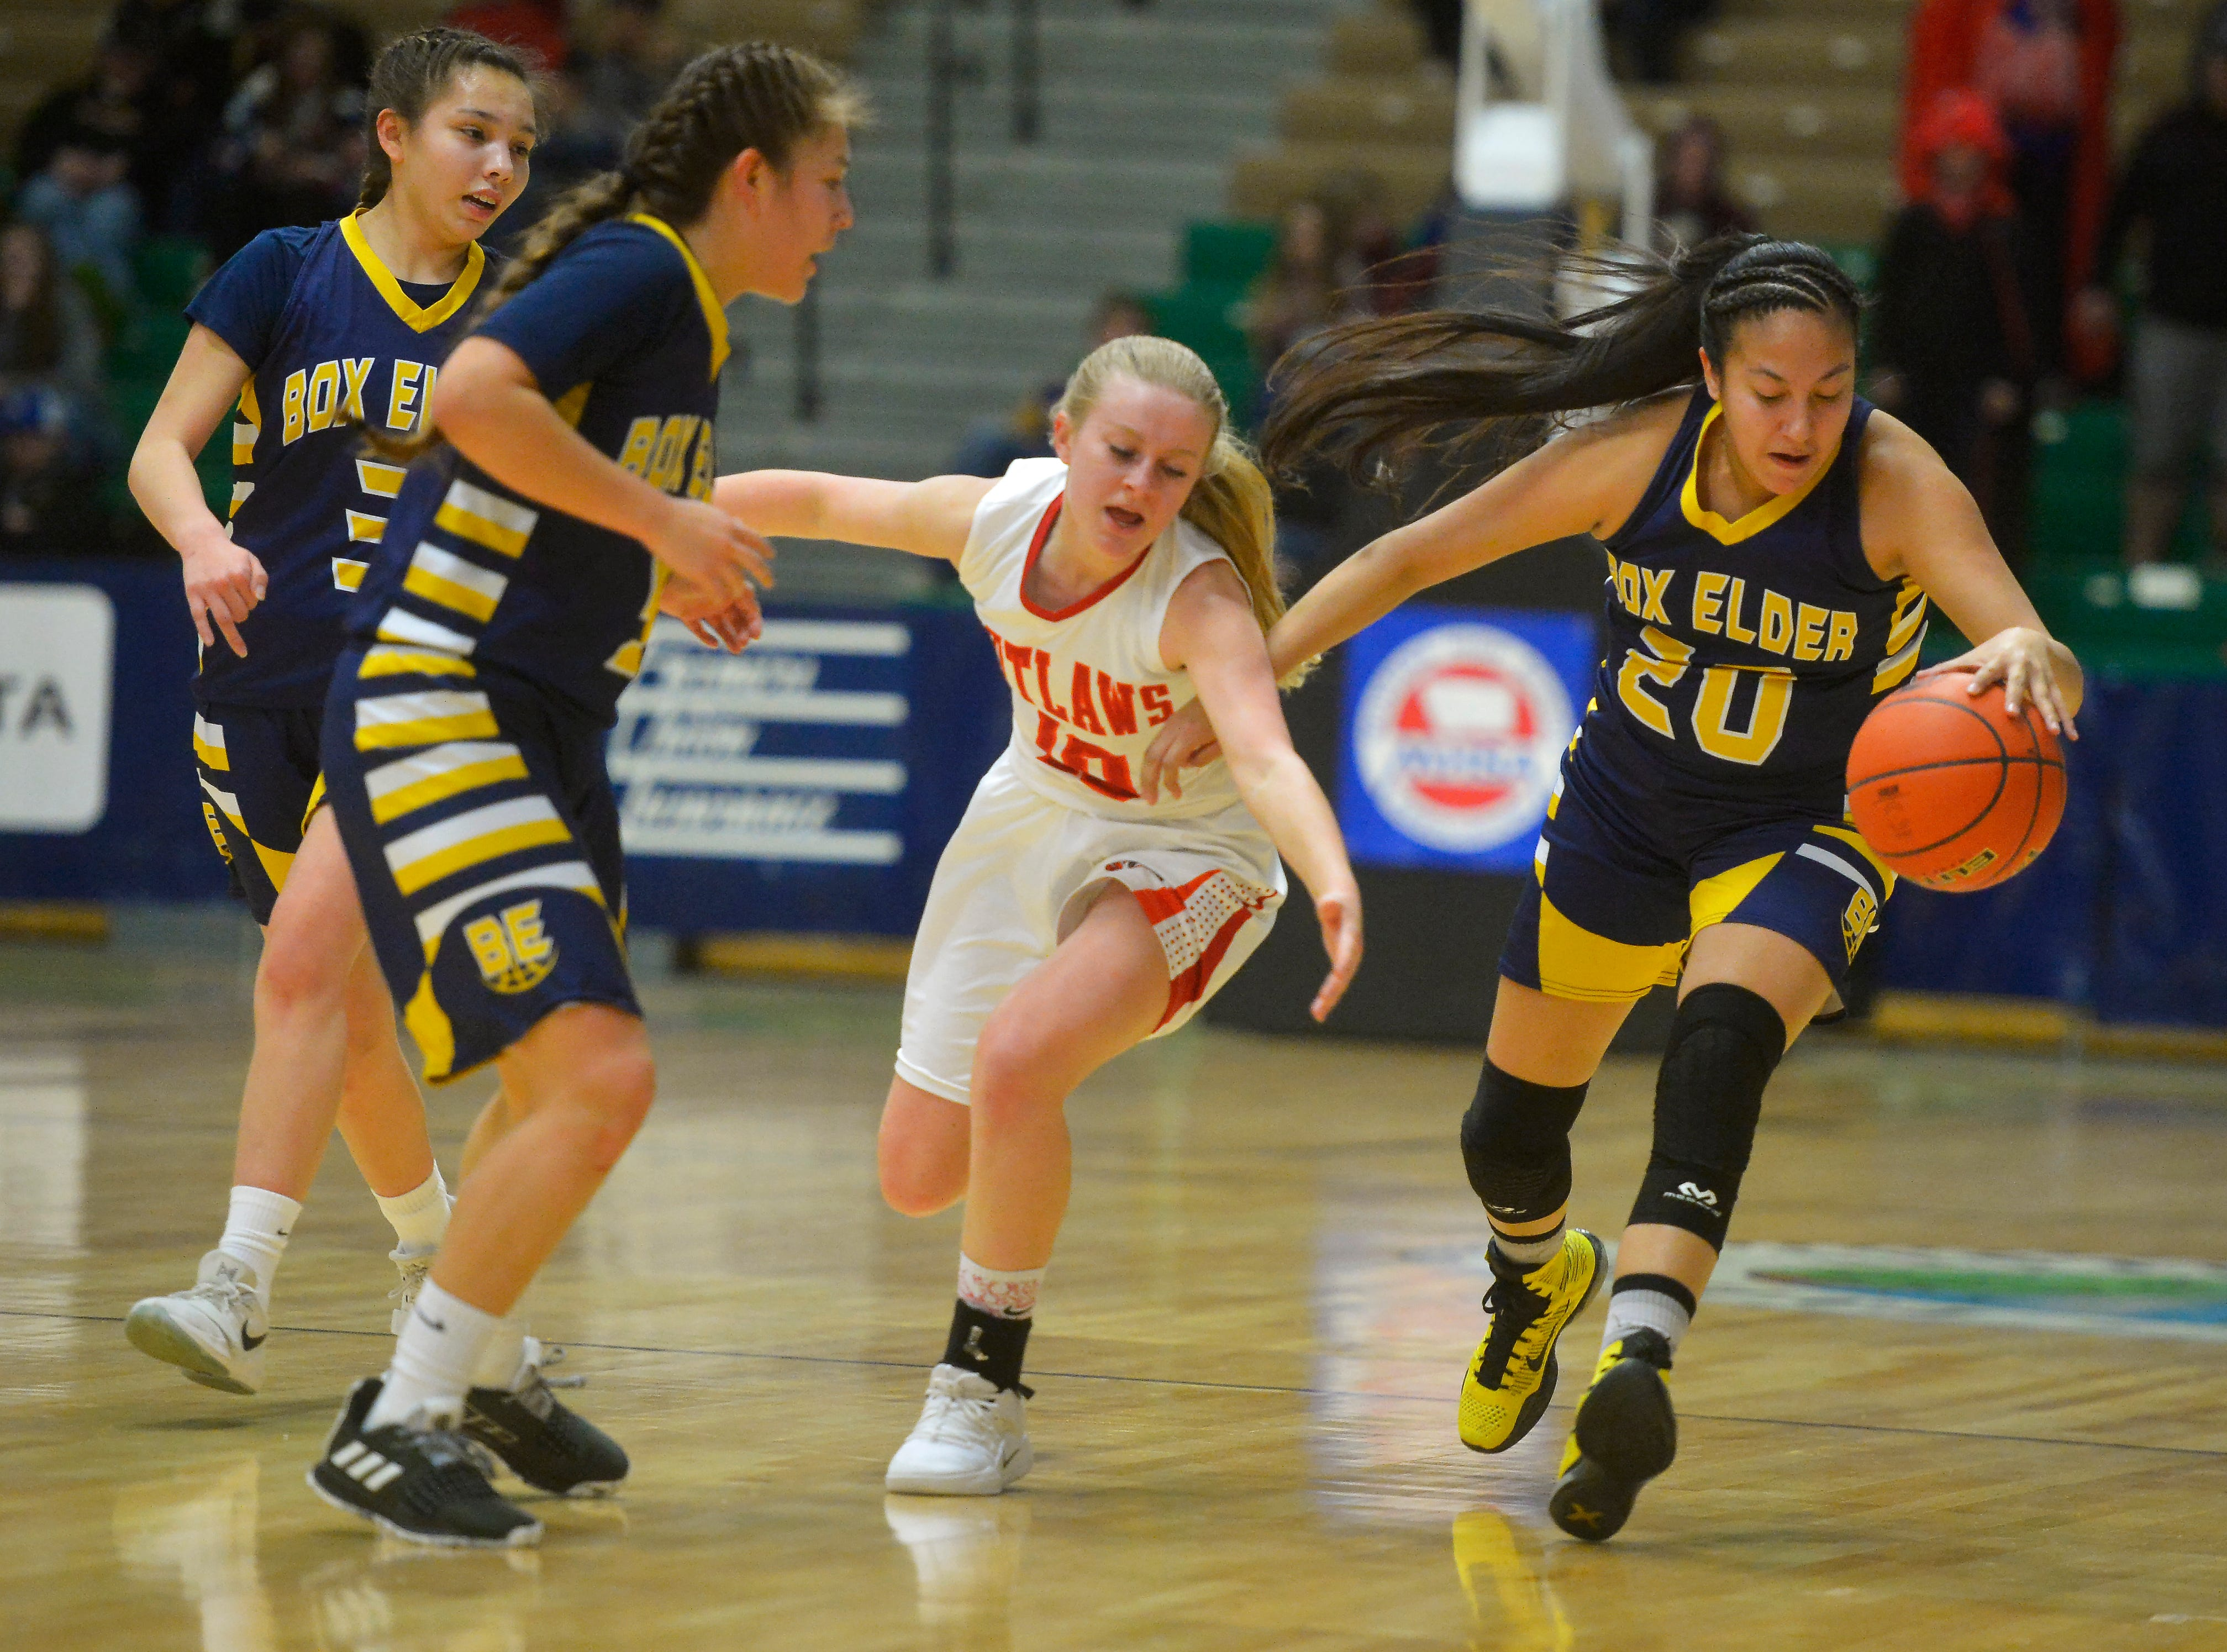 Box Elder and Roy Winifred play in the Class C state basketball championship game in the Four Seasons Arena, Saturday.